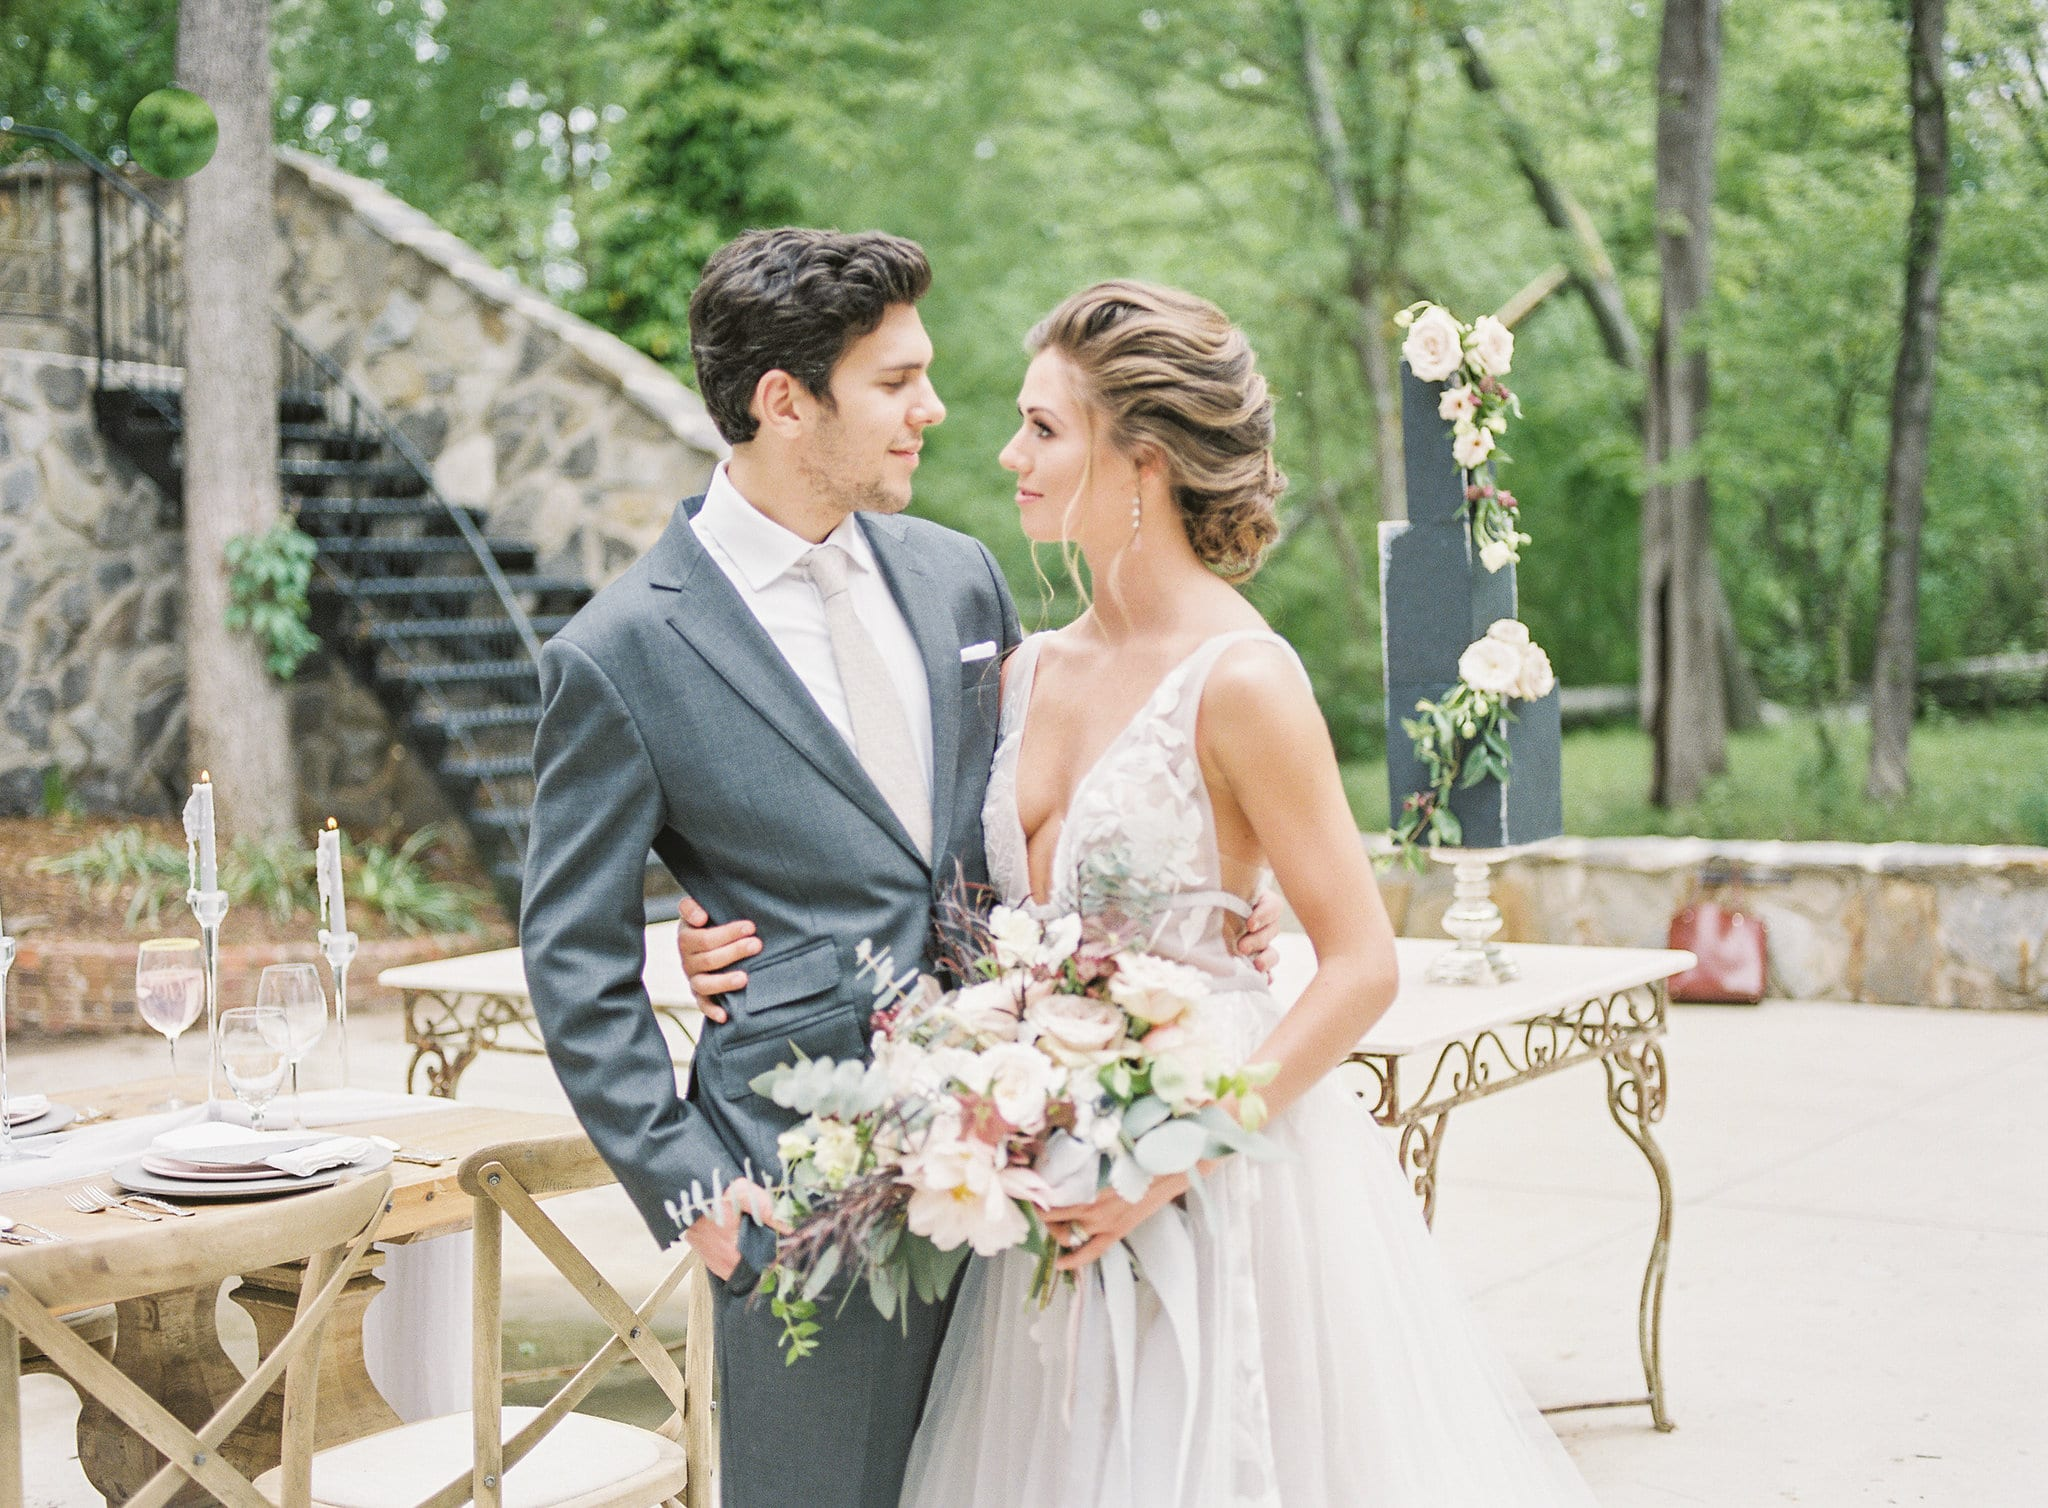 Bride has a sweet updo styled by Jenny Le for a styled shoot at Tipsy Goat Estate captured by Sunshower Photography